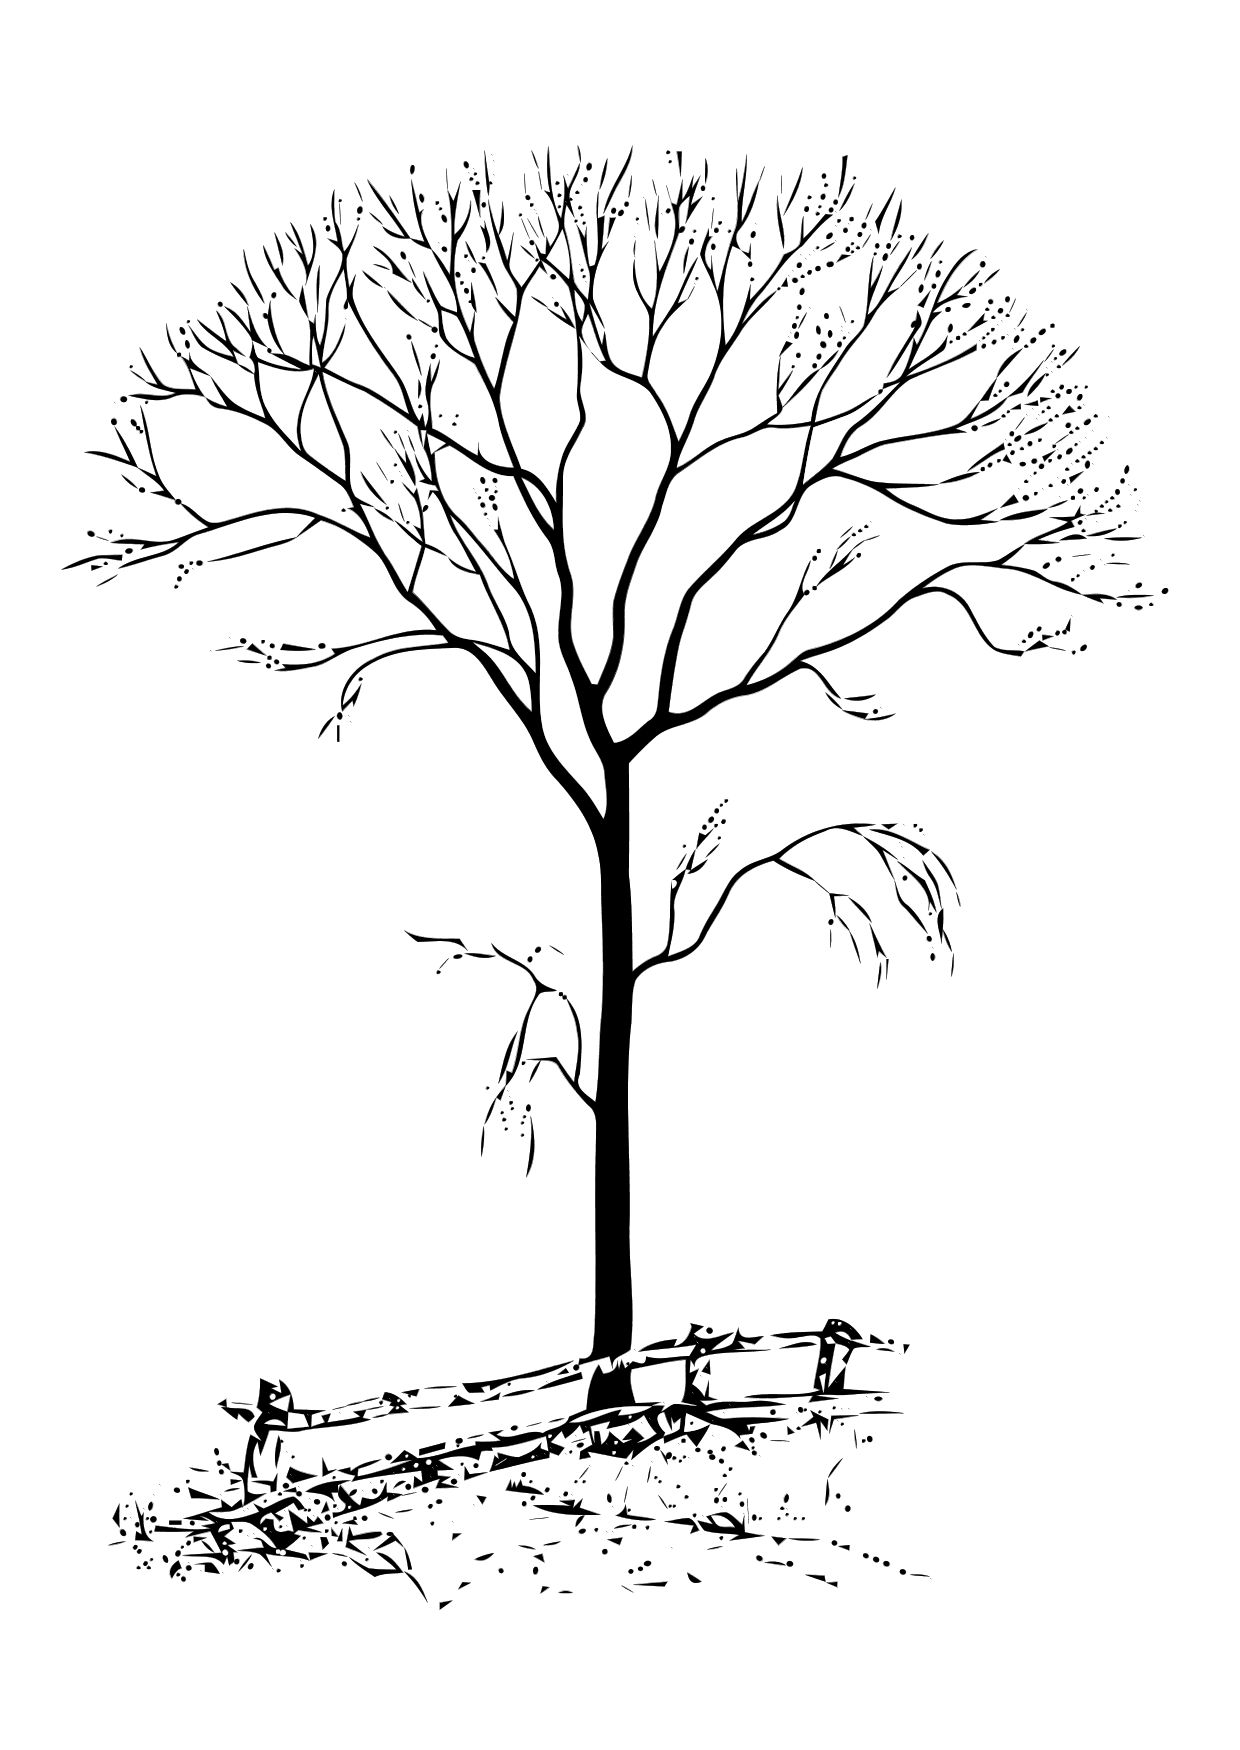 tree without leaves coloring page - Tree Leaves Coloring Page